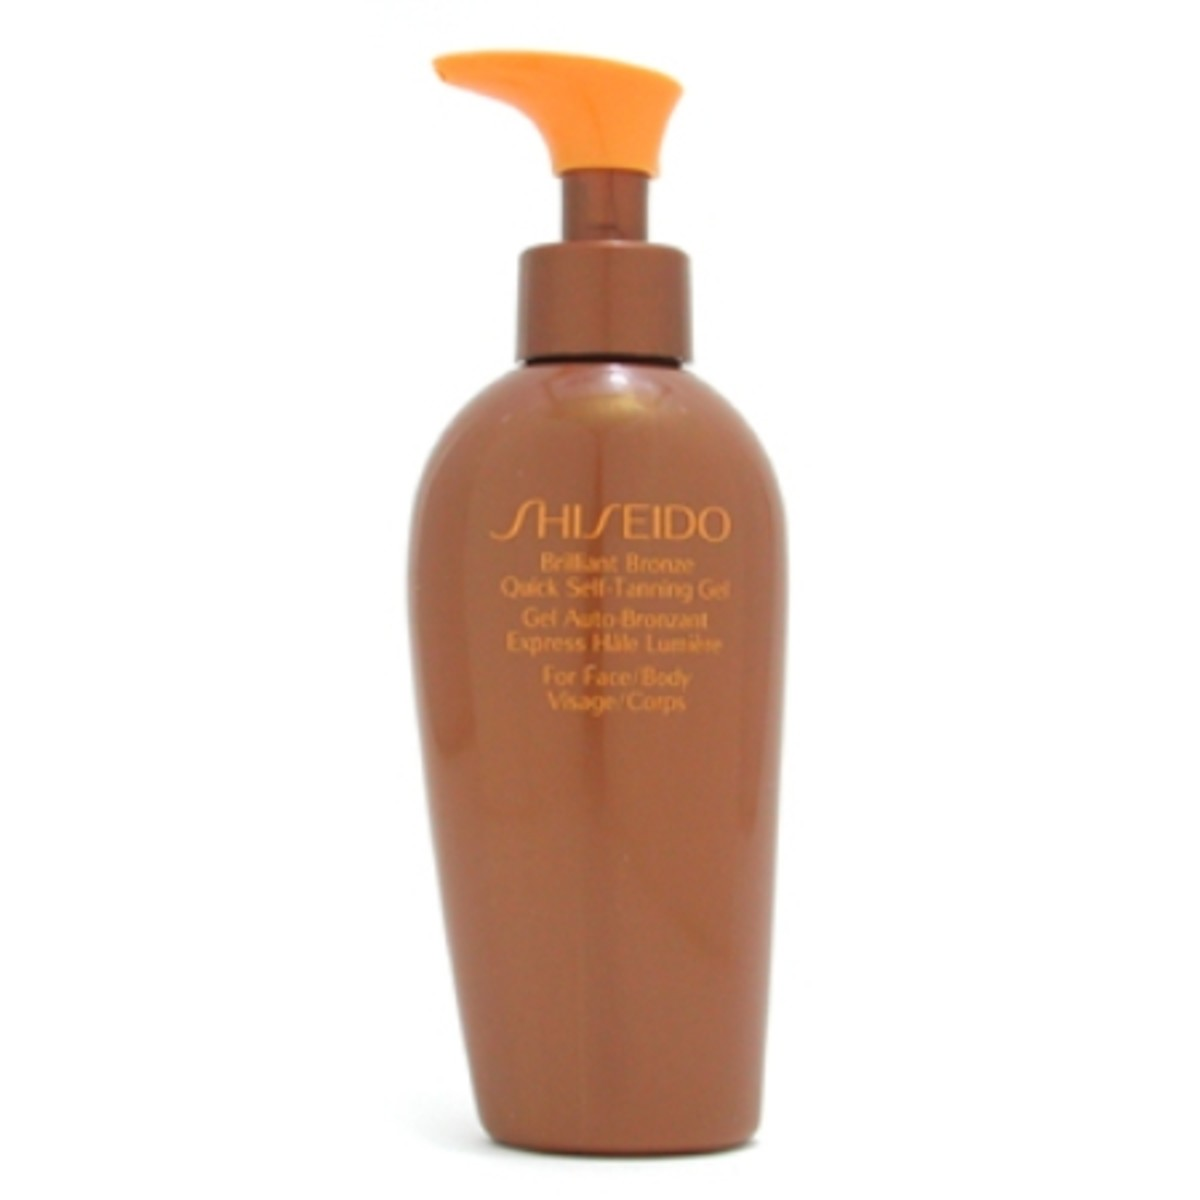 Shiseido-Brilliant-Bronze-Quick-Self-Tanning-Gel